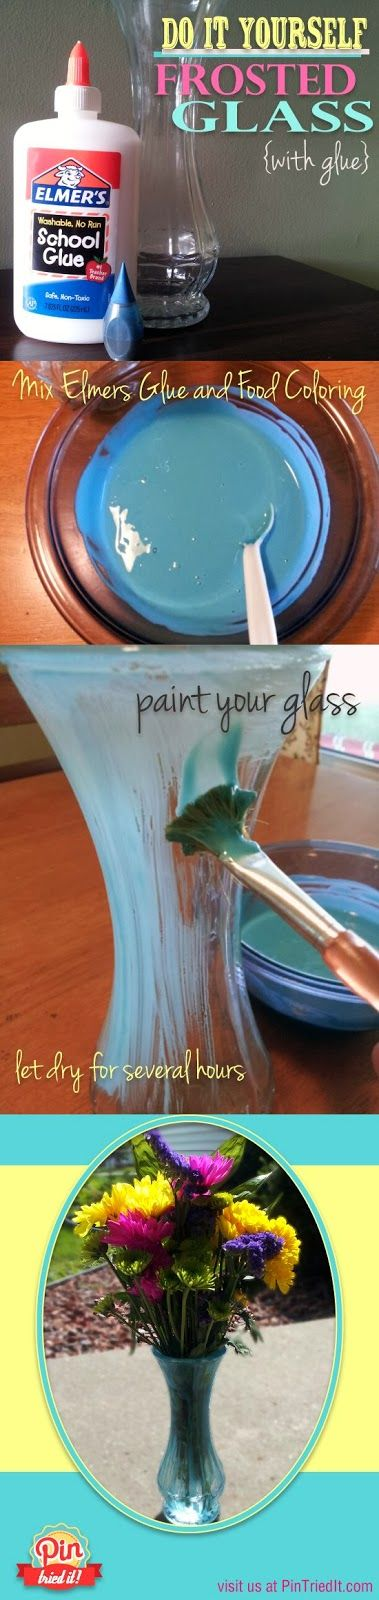 Frost Glass with Glue